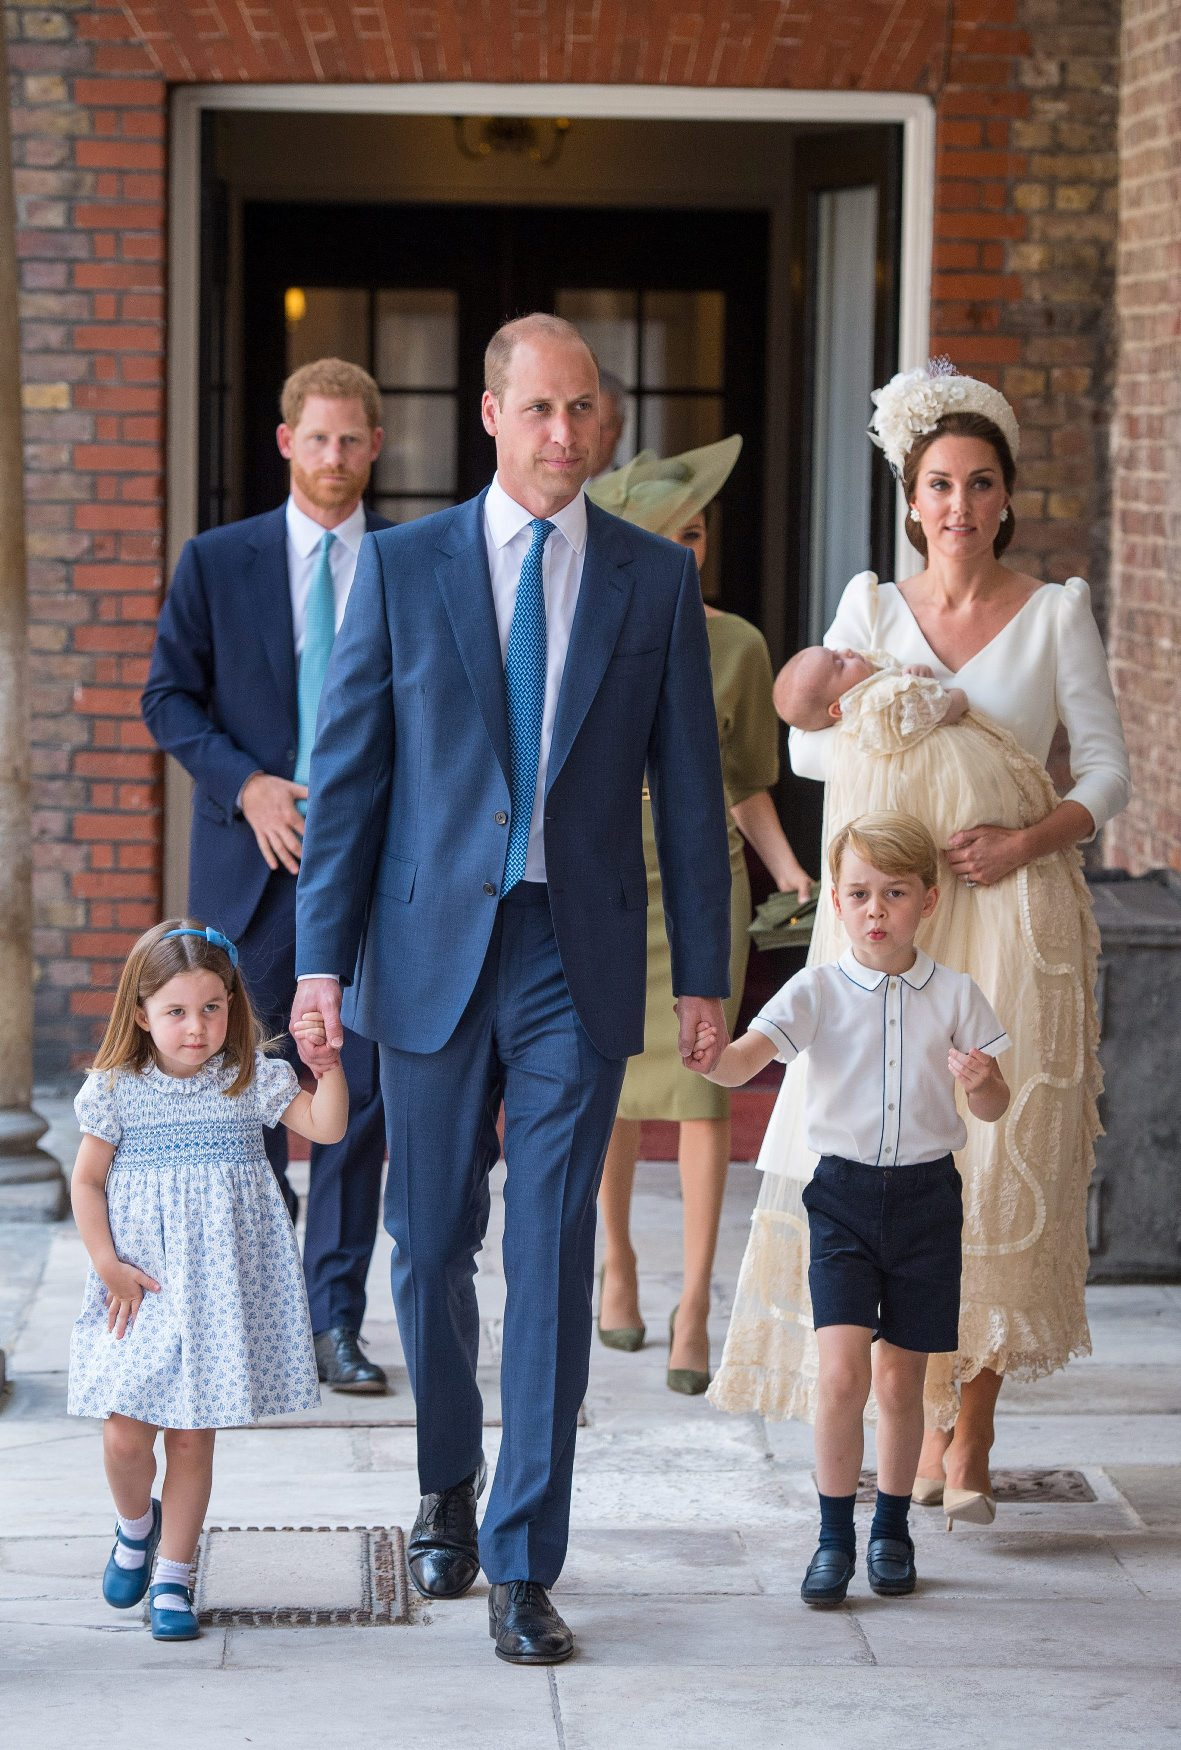 Britain's Princess Charlotte and Prince George hold the hands of their father, William, the Duke of Cambridge, as they arrive for the christening of their brother, Prince Louis, who is being carried by their mother, Catherine, the Duchess of Cambridge, at the Chapel Royal, St James's Palace, London, Britain, July 9, 2018. Dominic Lipinski/Pool via REUTERS